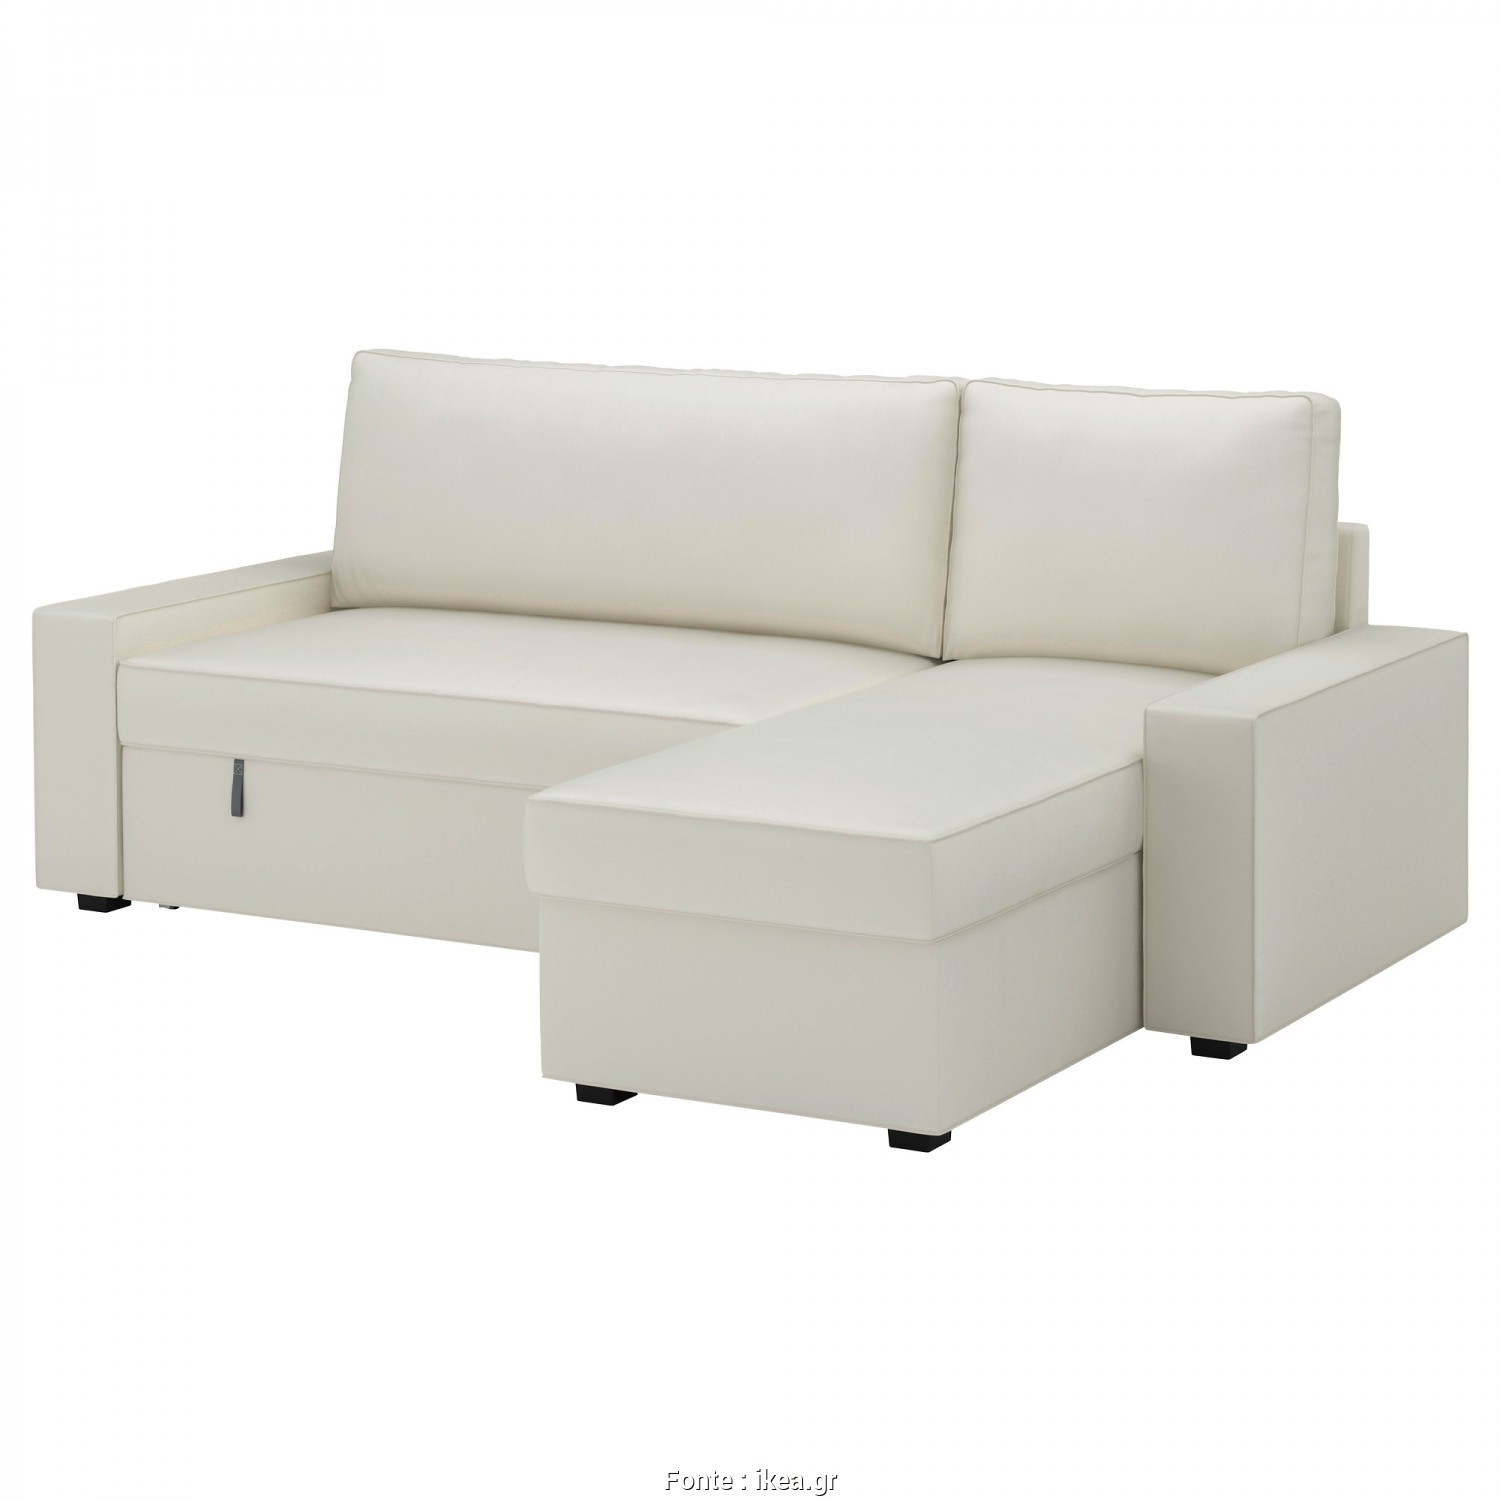 Ikea Vilasund 2Er, Amabile VILASUND Frame Sofa-Bed With Chaise Longue